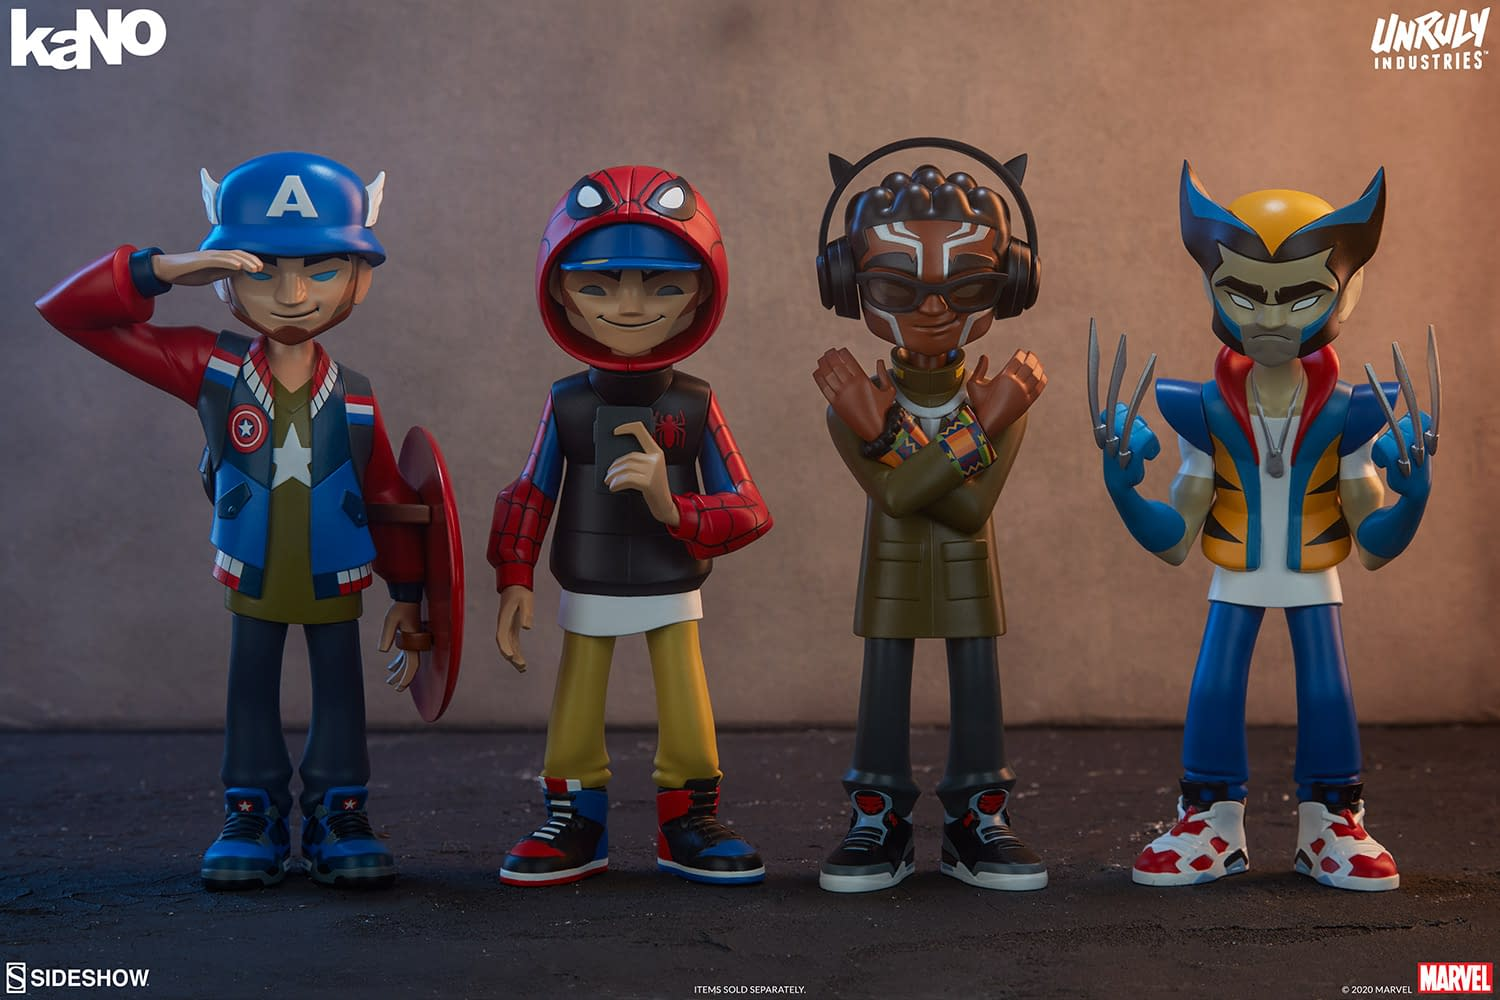 Marvel Designer Collectible Figures from Unruly Industries